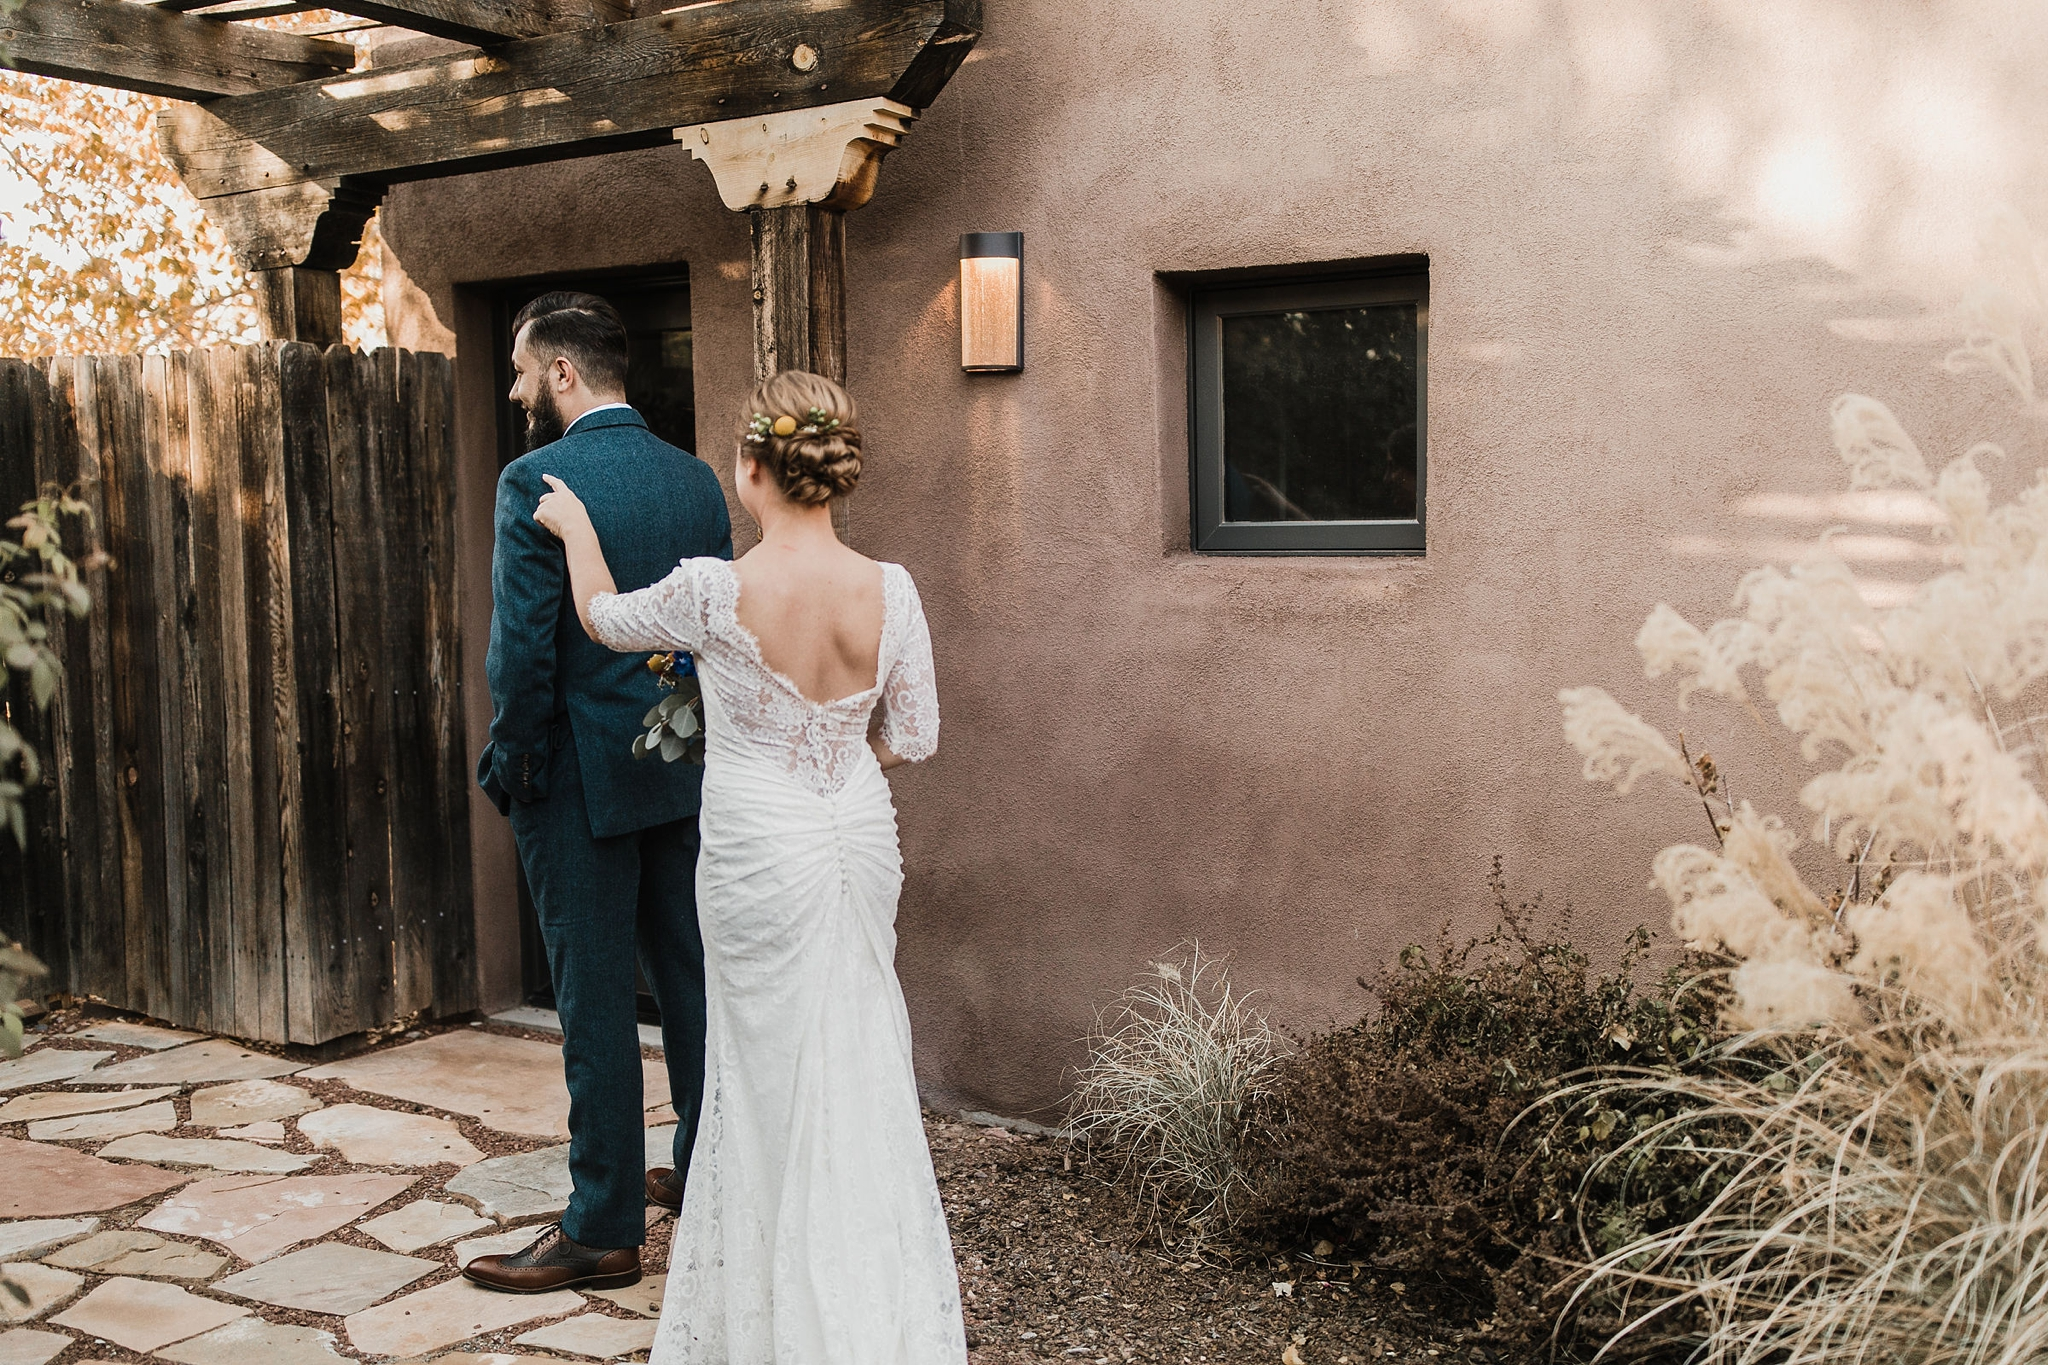 Alicia+lucia+photography+-+albuquerque+wedding+photographer+-+santa+fe+wedding+photography+-+new+mexico+wedding+photographer+-+albuquerque+wedding+-+sarabande+bed+breakfast+-+bed+and+breakfast+wedding_0021.jpg